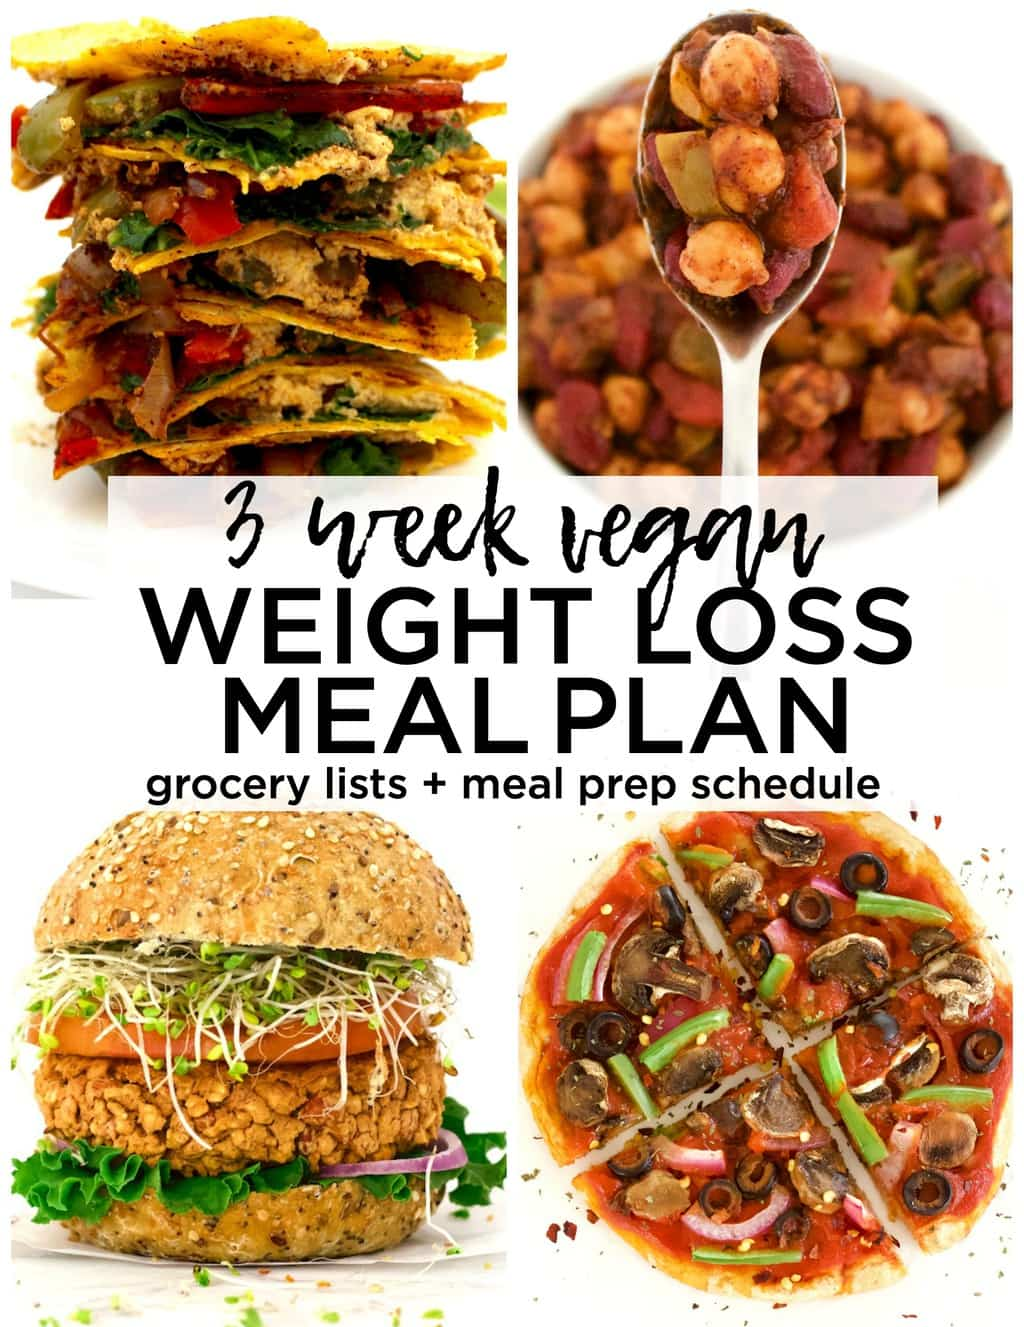 This AMAZING 3-week vegan meal plan will help you lose weight and achieve your goals! Complete with 21 day's worth of simple & delicious recipes, grocery lists, and meal prep schedules. All recipes are also gluten-free & contain no refined sugar!